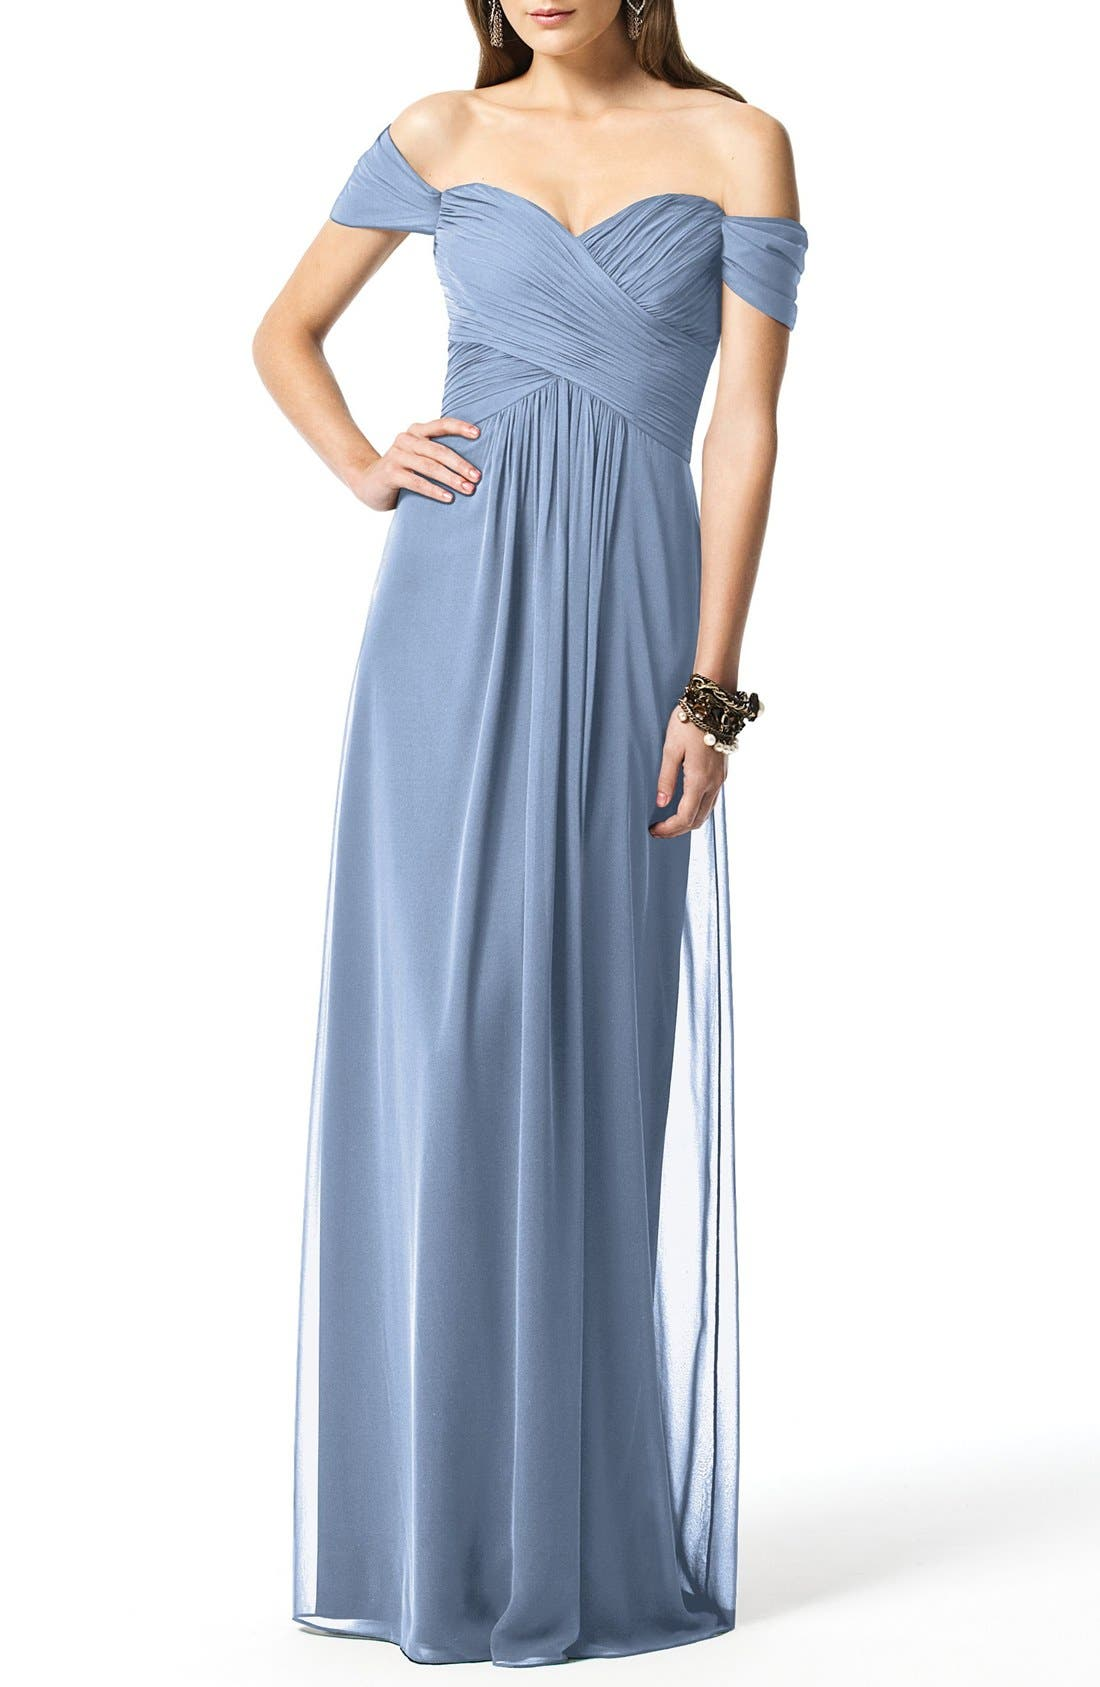 DESSY COLLECTION, Ruched Chiffon Gown, Main thumbnail 1, color, CLOUDY